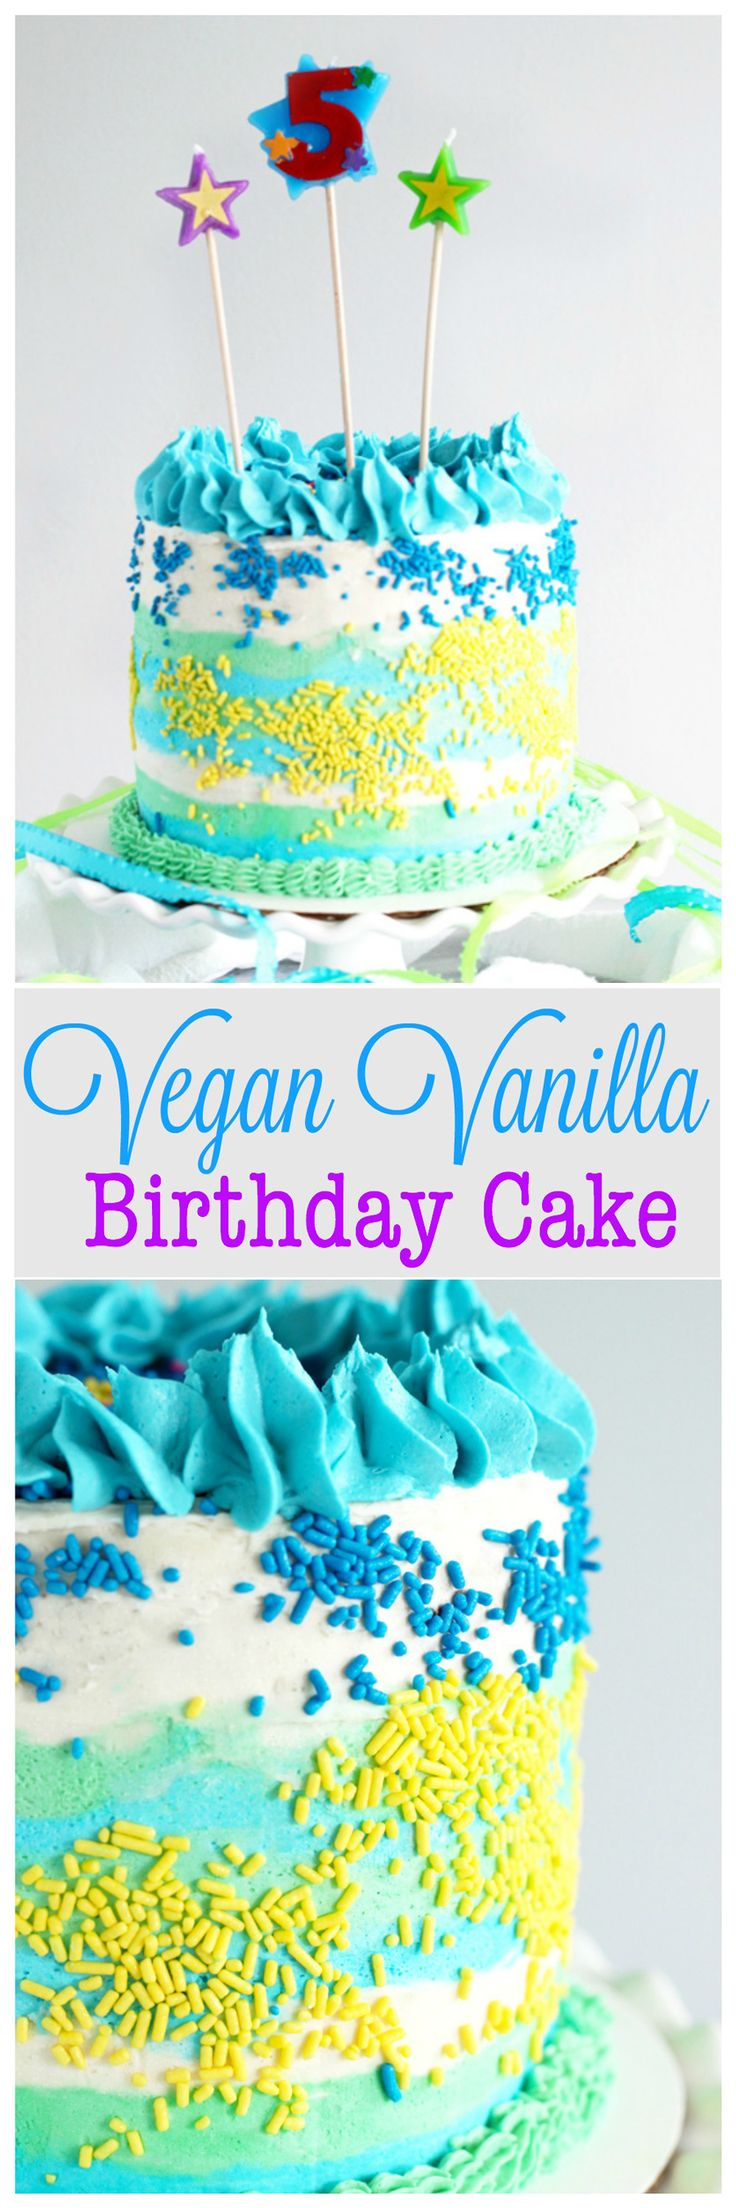 Vegan Birthday Cake Images : 25+ best ideas about Vegan birthday cake on Pinterest ...